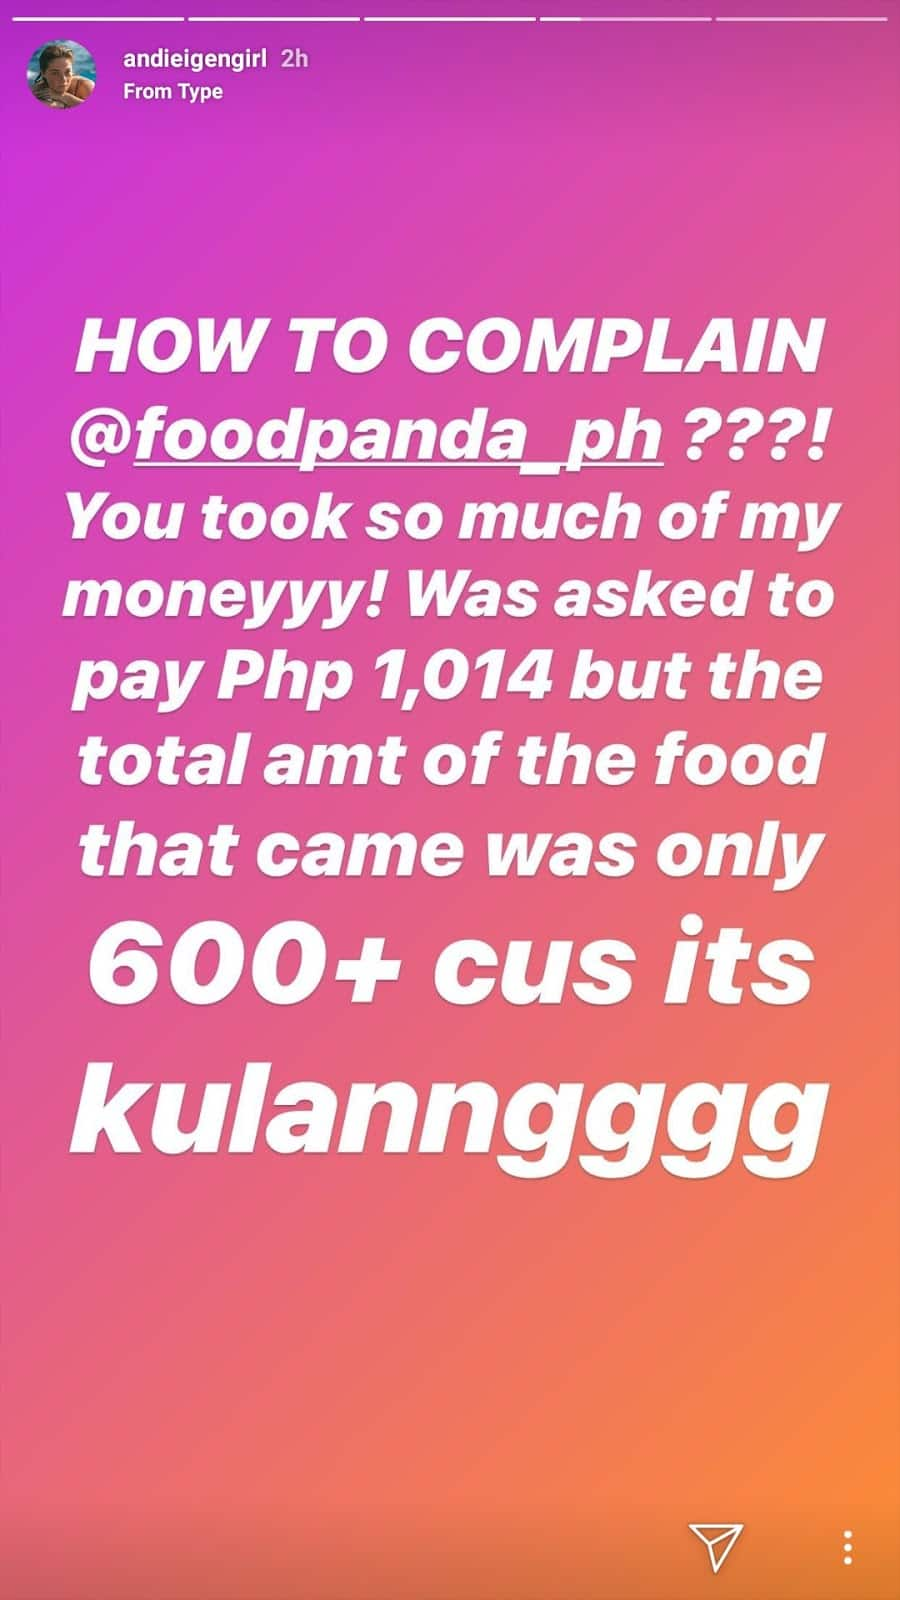 Andi Eigenmann orders for daughter but got ripped off by food delivery service